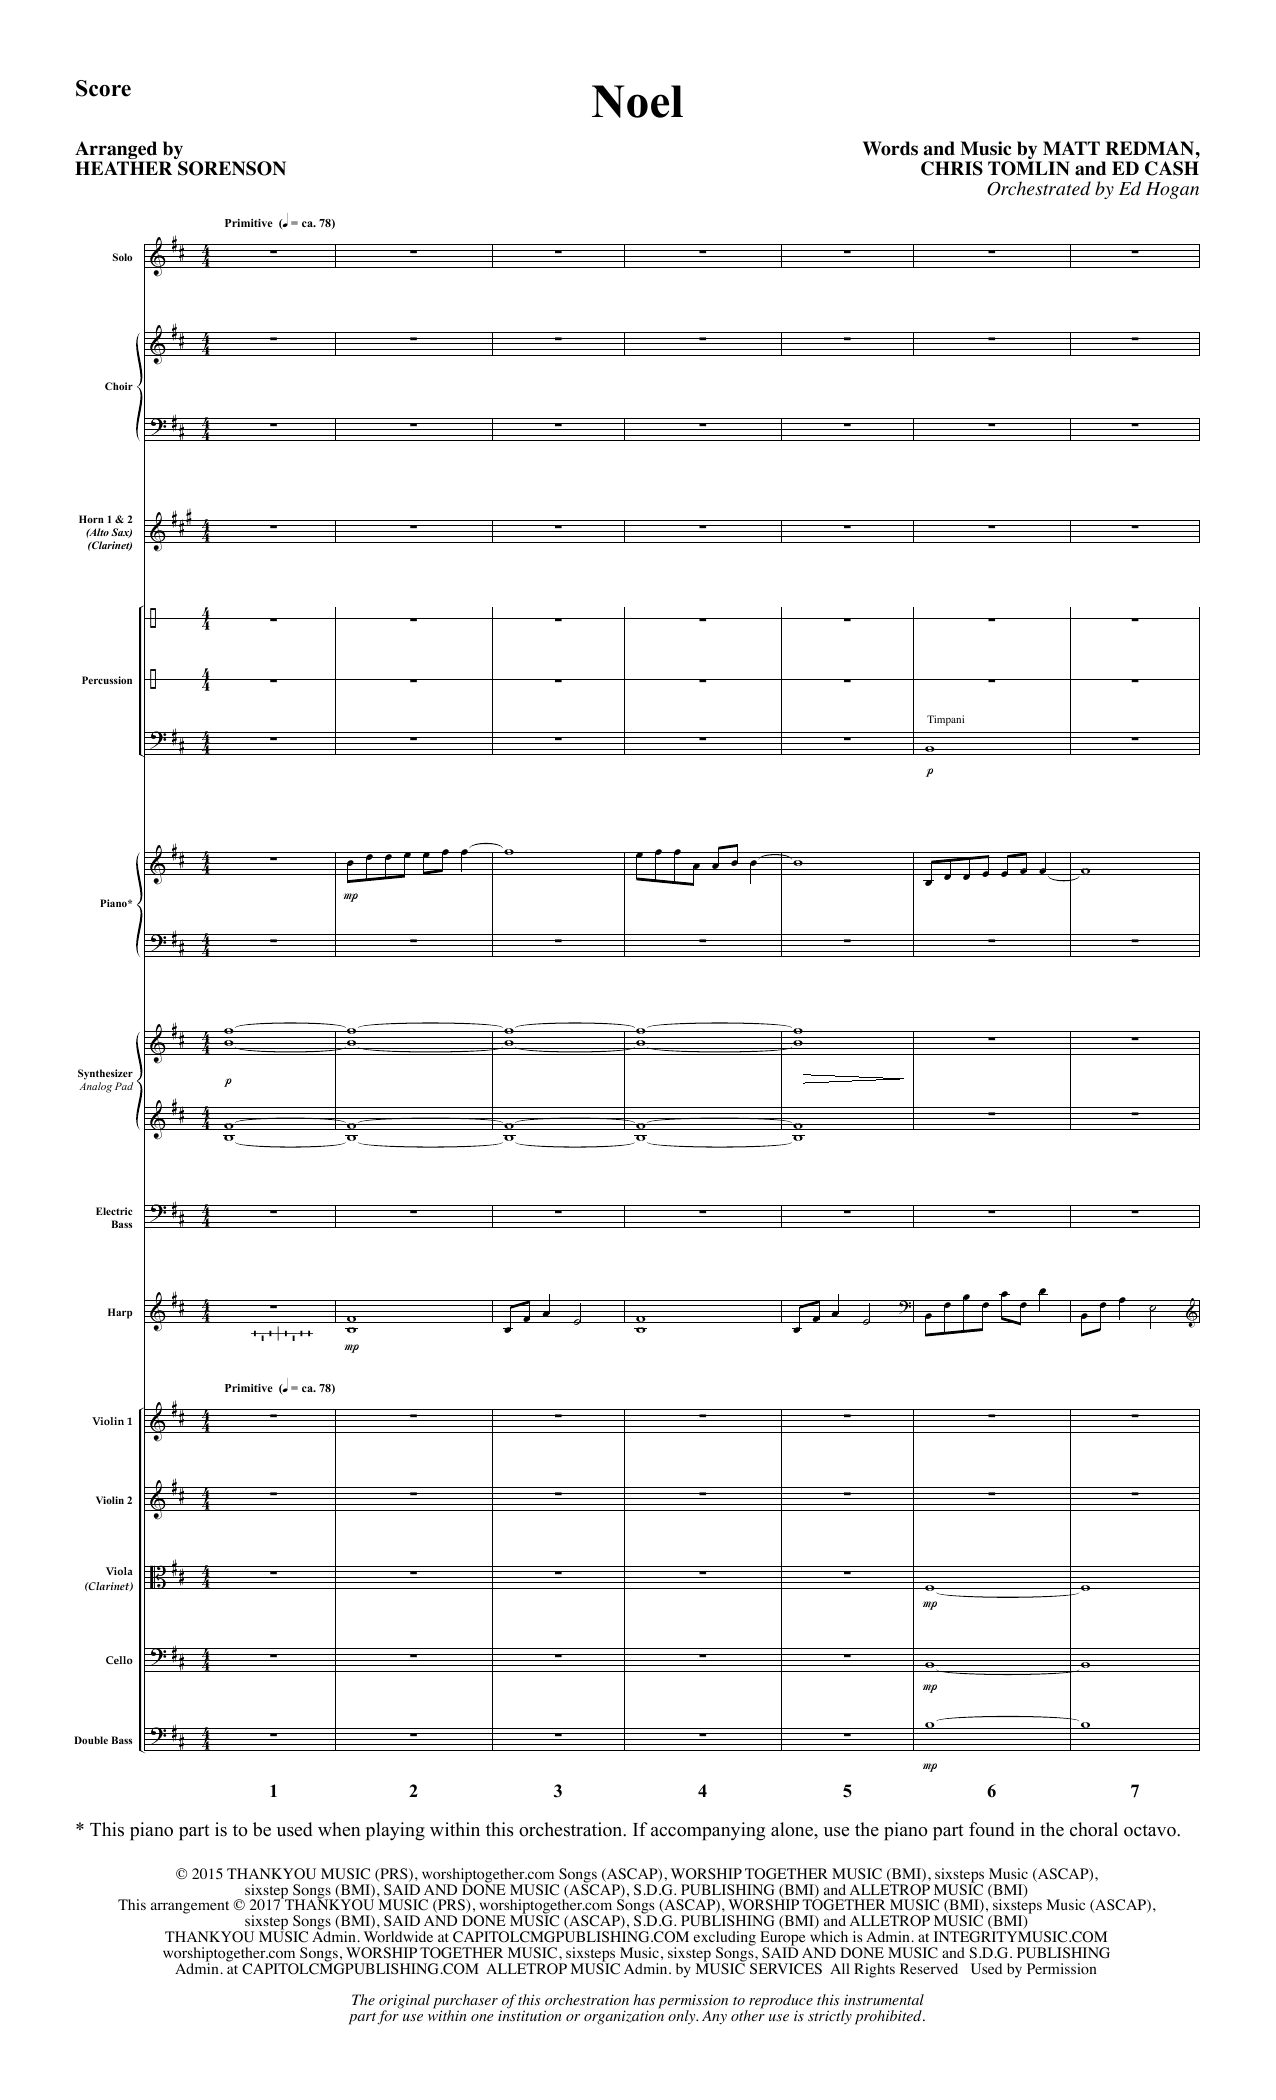 Noel (COMPLETE) sheet music for orchestra/band by Chris Tomlin, Ed Cash, Heather Sorenson and Matt Redman. Score Image Preview.